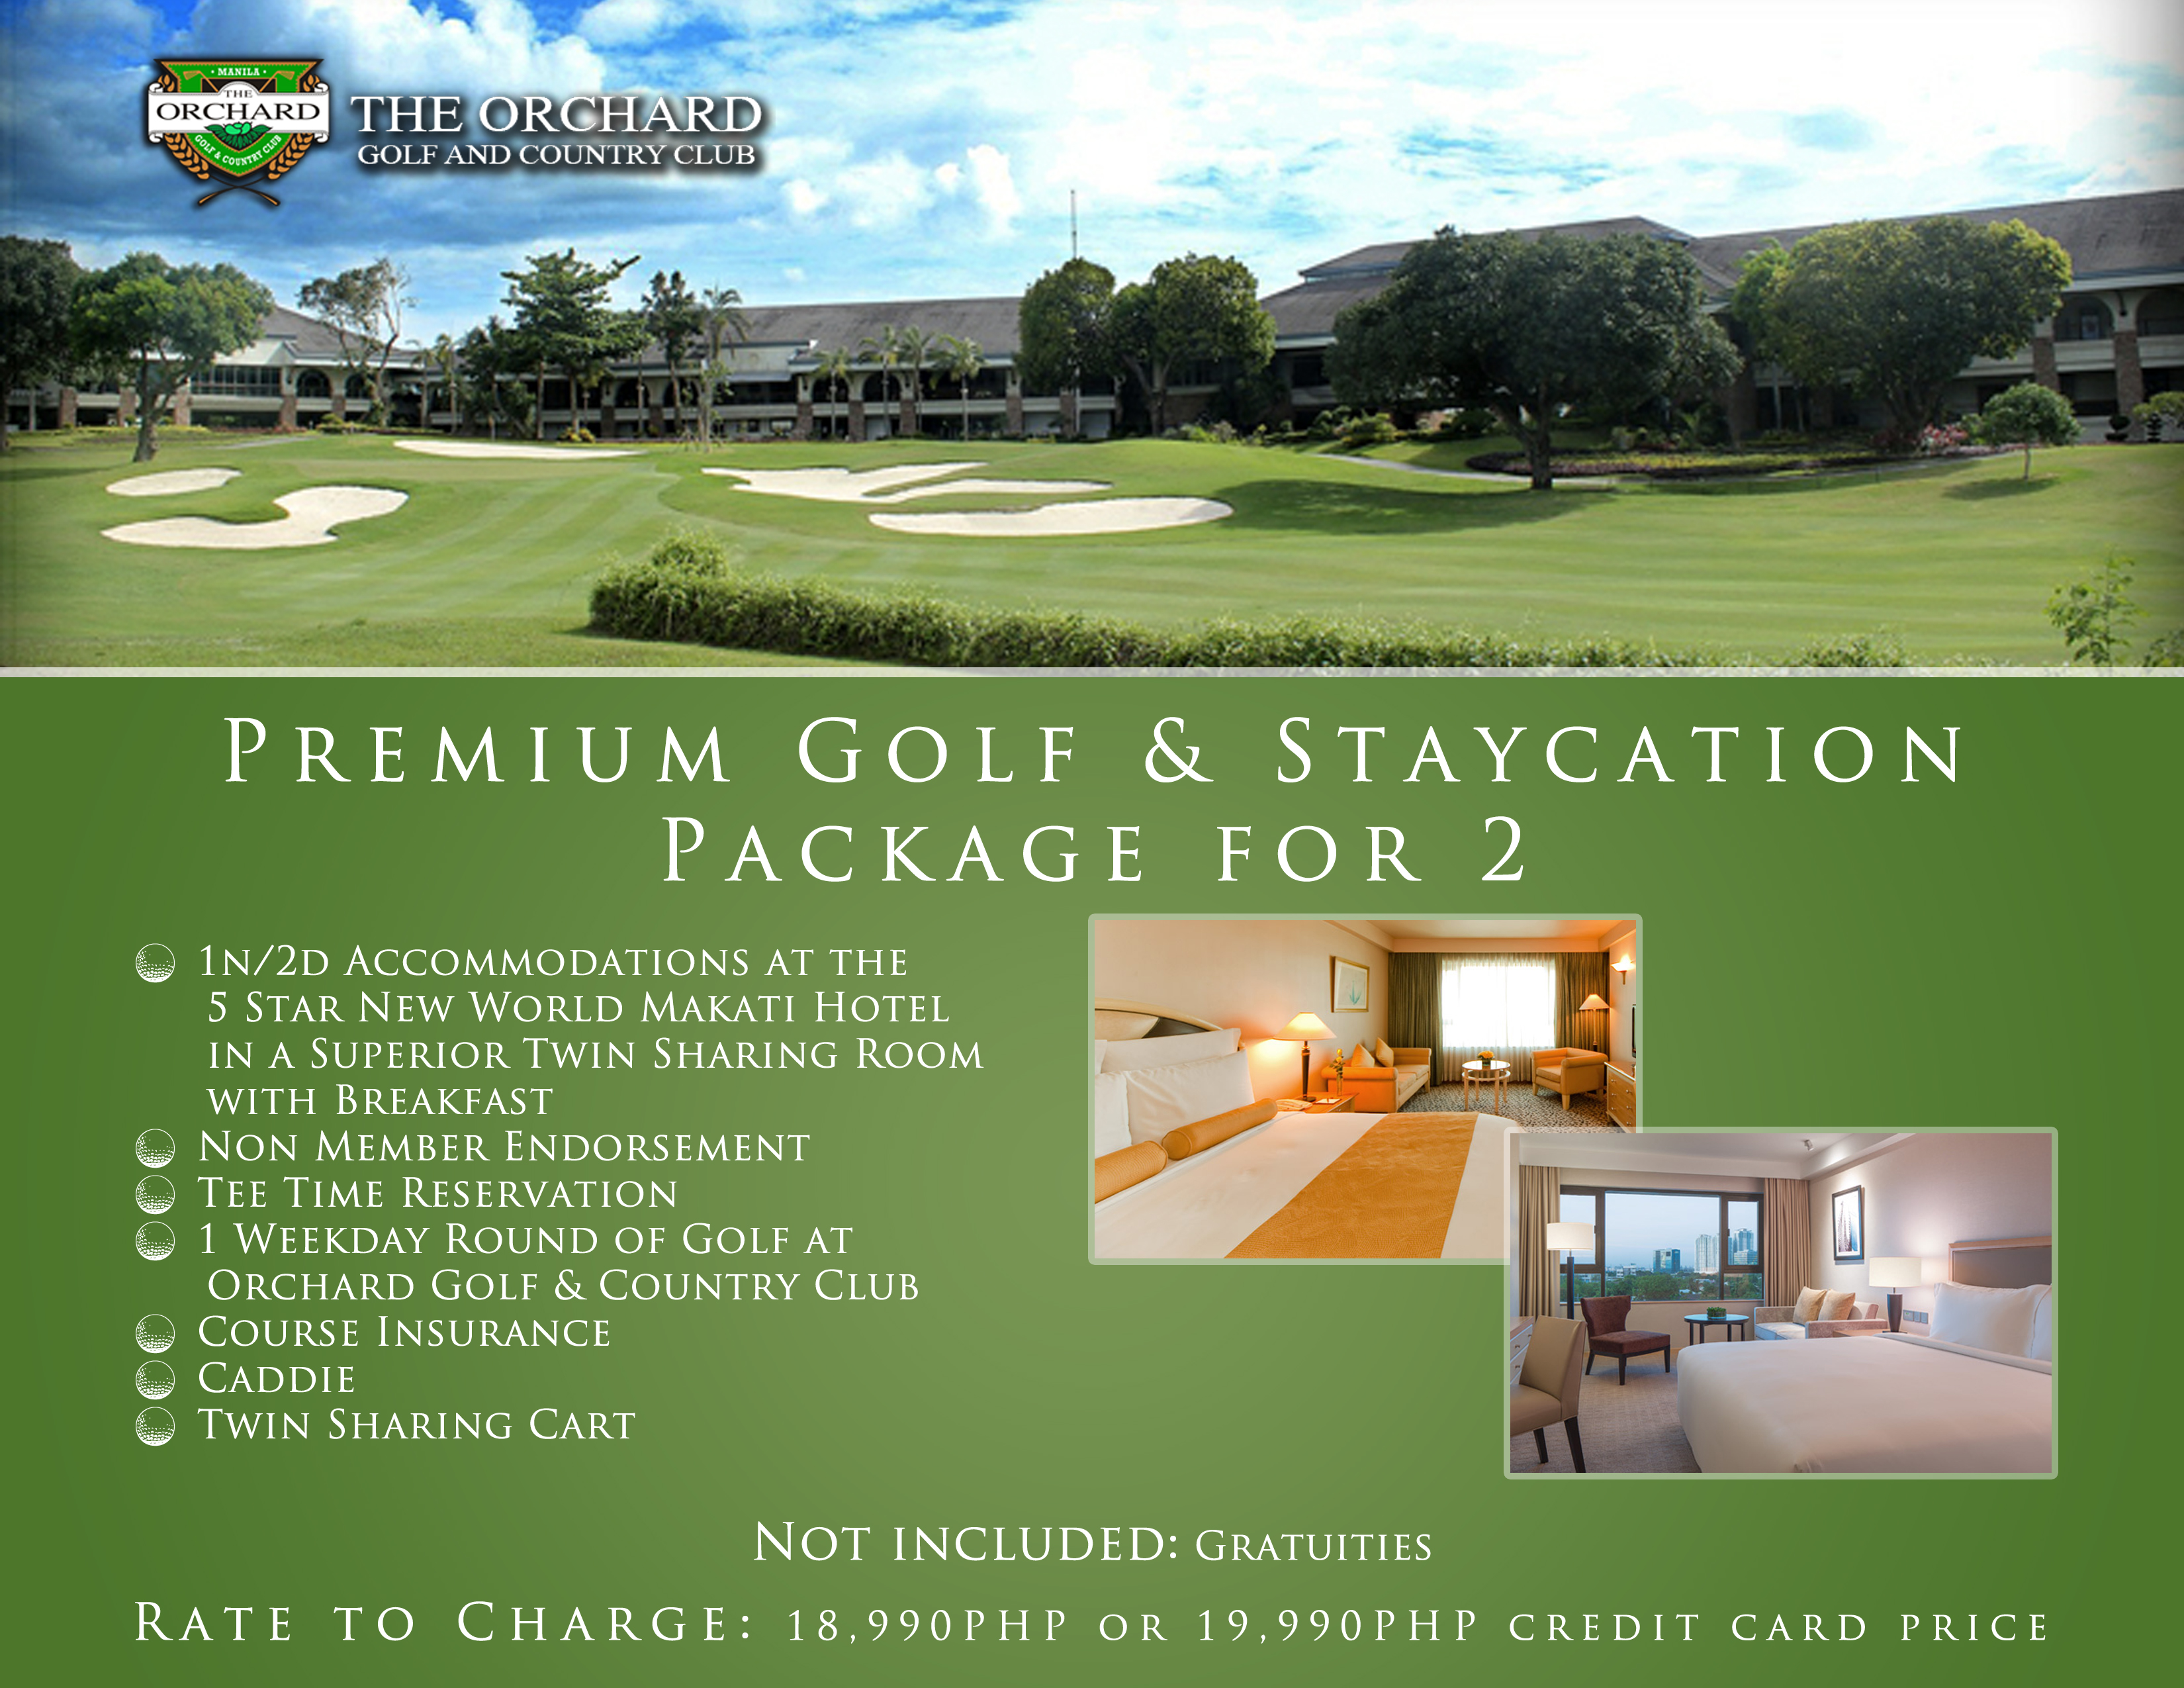 Offer #9 - Premium Golf & Staycation Package for 2